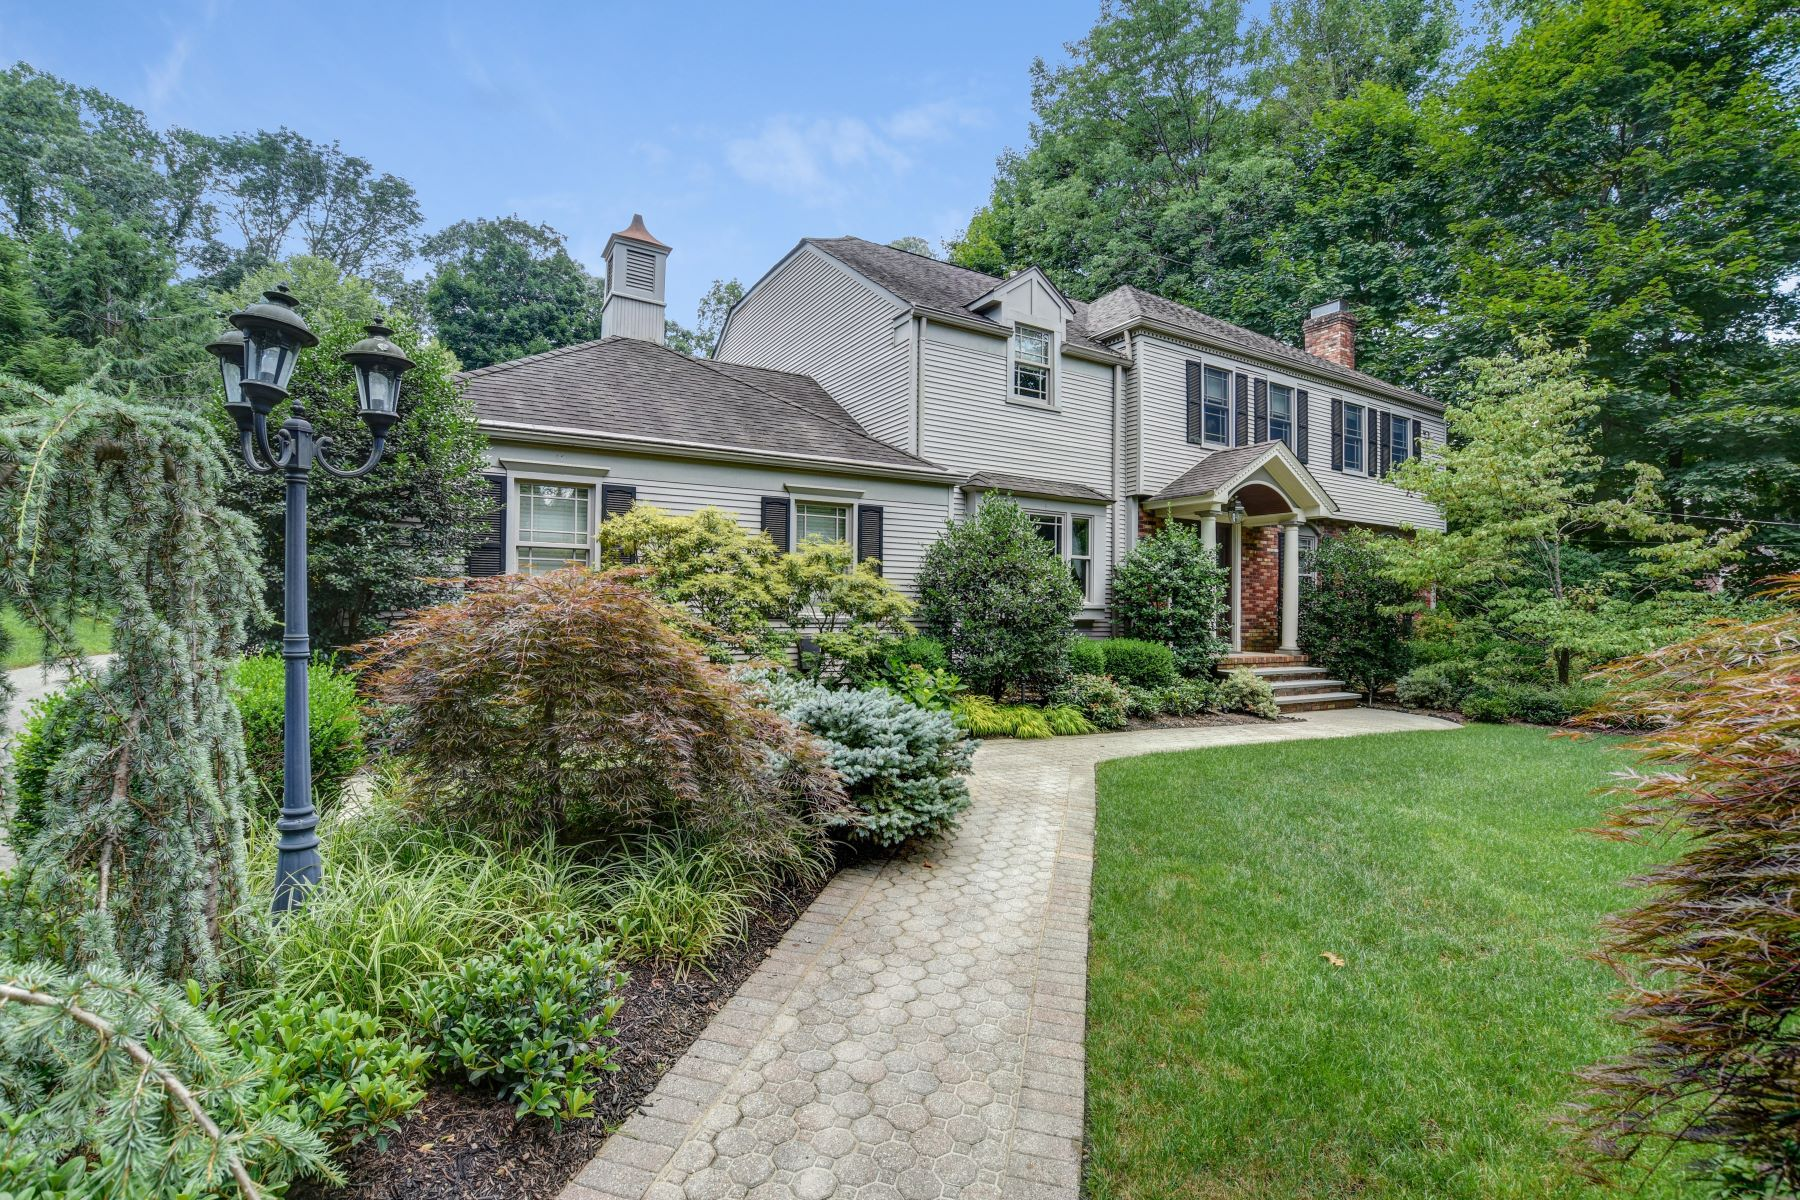 Single Family Homes for Sale at Sophisticated Colonial 7 Easley Terrace Morris Township, New Jersey 07960 United States